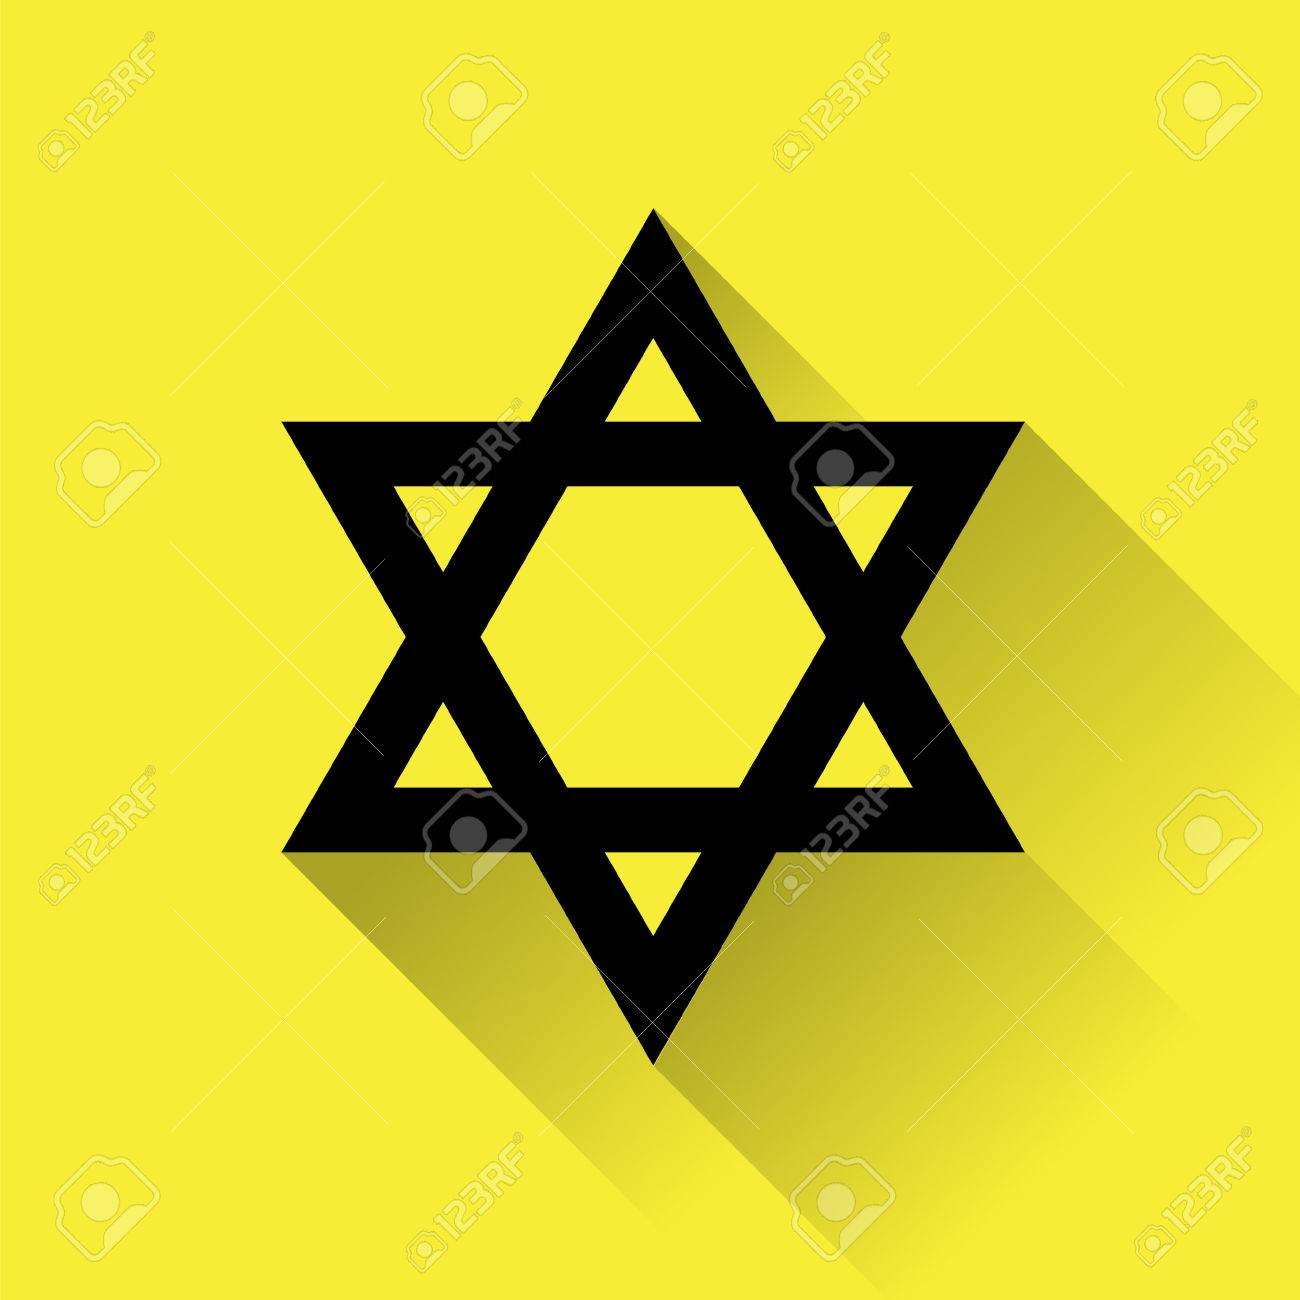 Star of david icon for web flat design on yellow background star of david icon for web flat design on yellow background stock vector biocorpaavc Choice Image